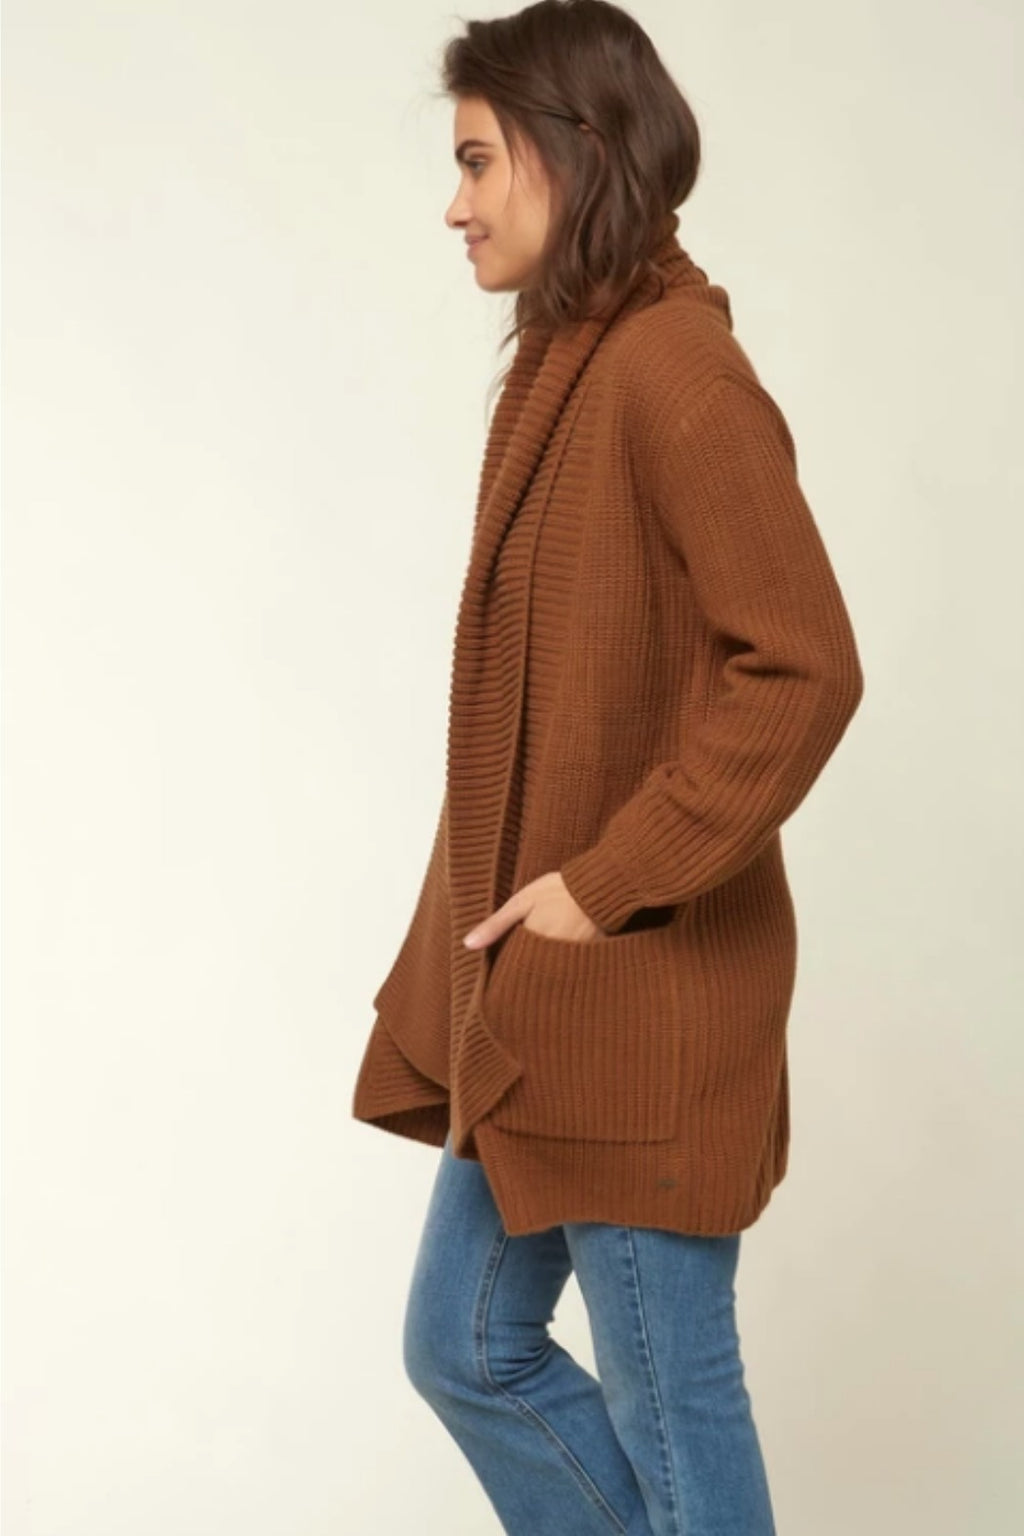 O'Neill Galley Sweater in Caramel